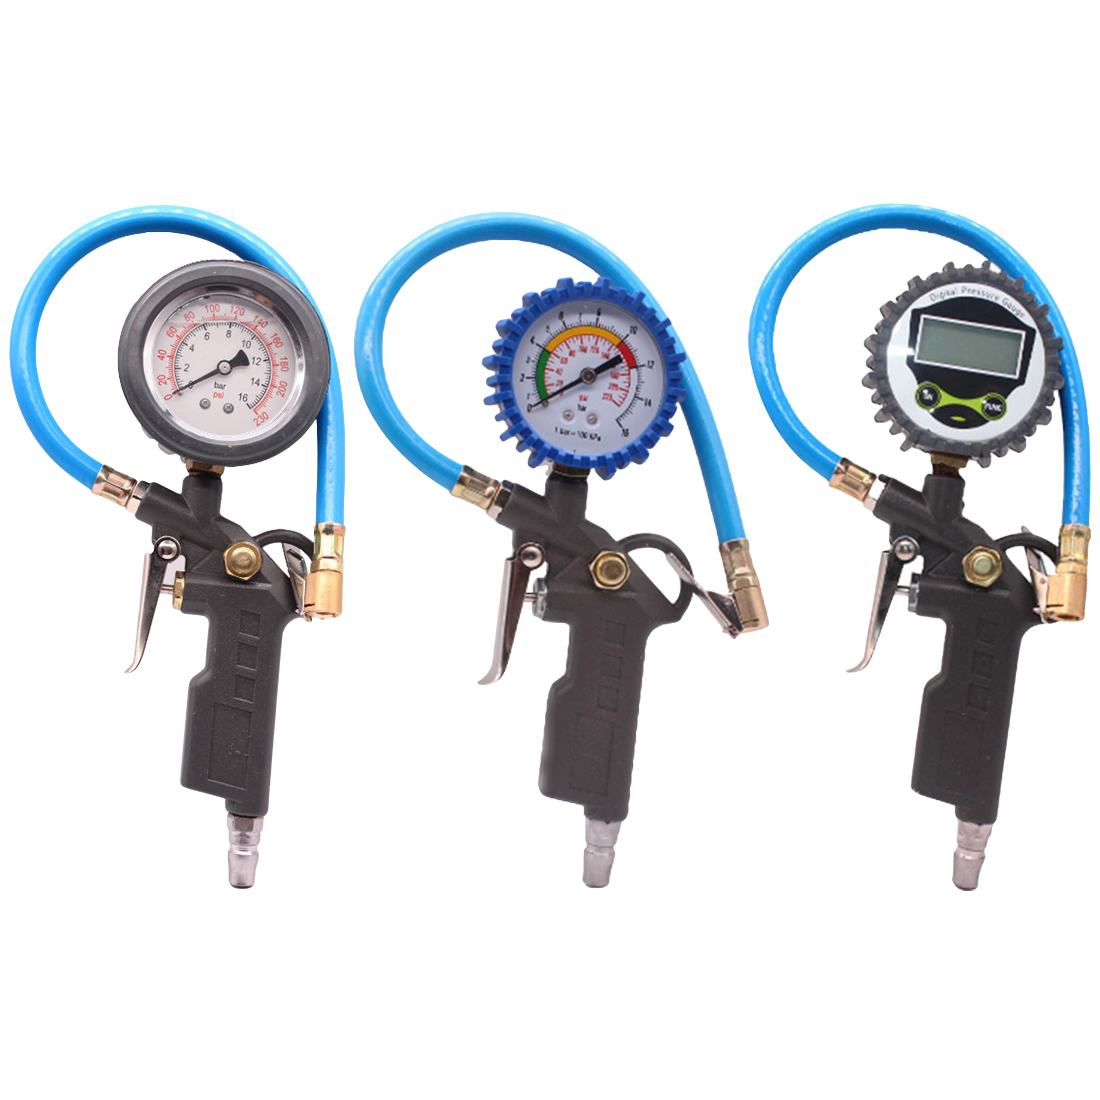 Digitale Auto Reifen Reifen Air Manometer 0-220PSI 0-16bar Meter LCD Display Manometer Barometers Tester für Auto Lkw Bike